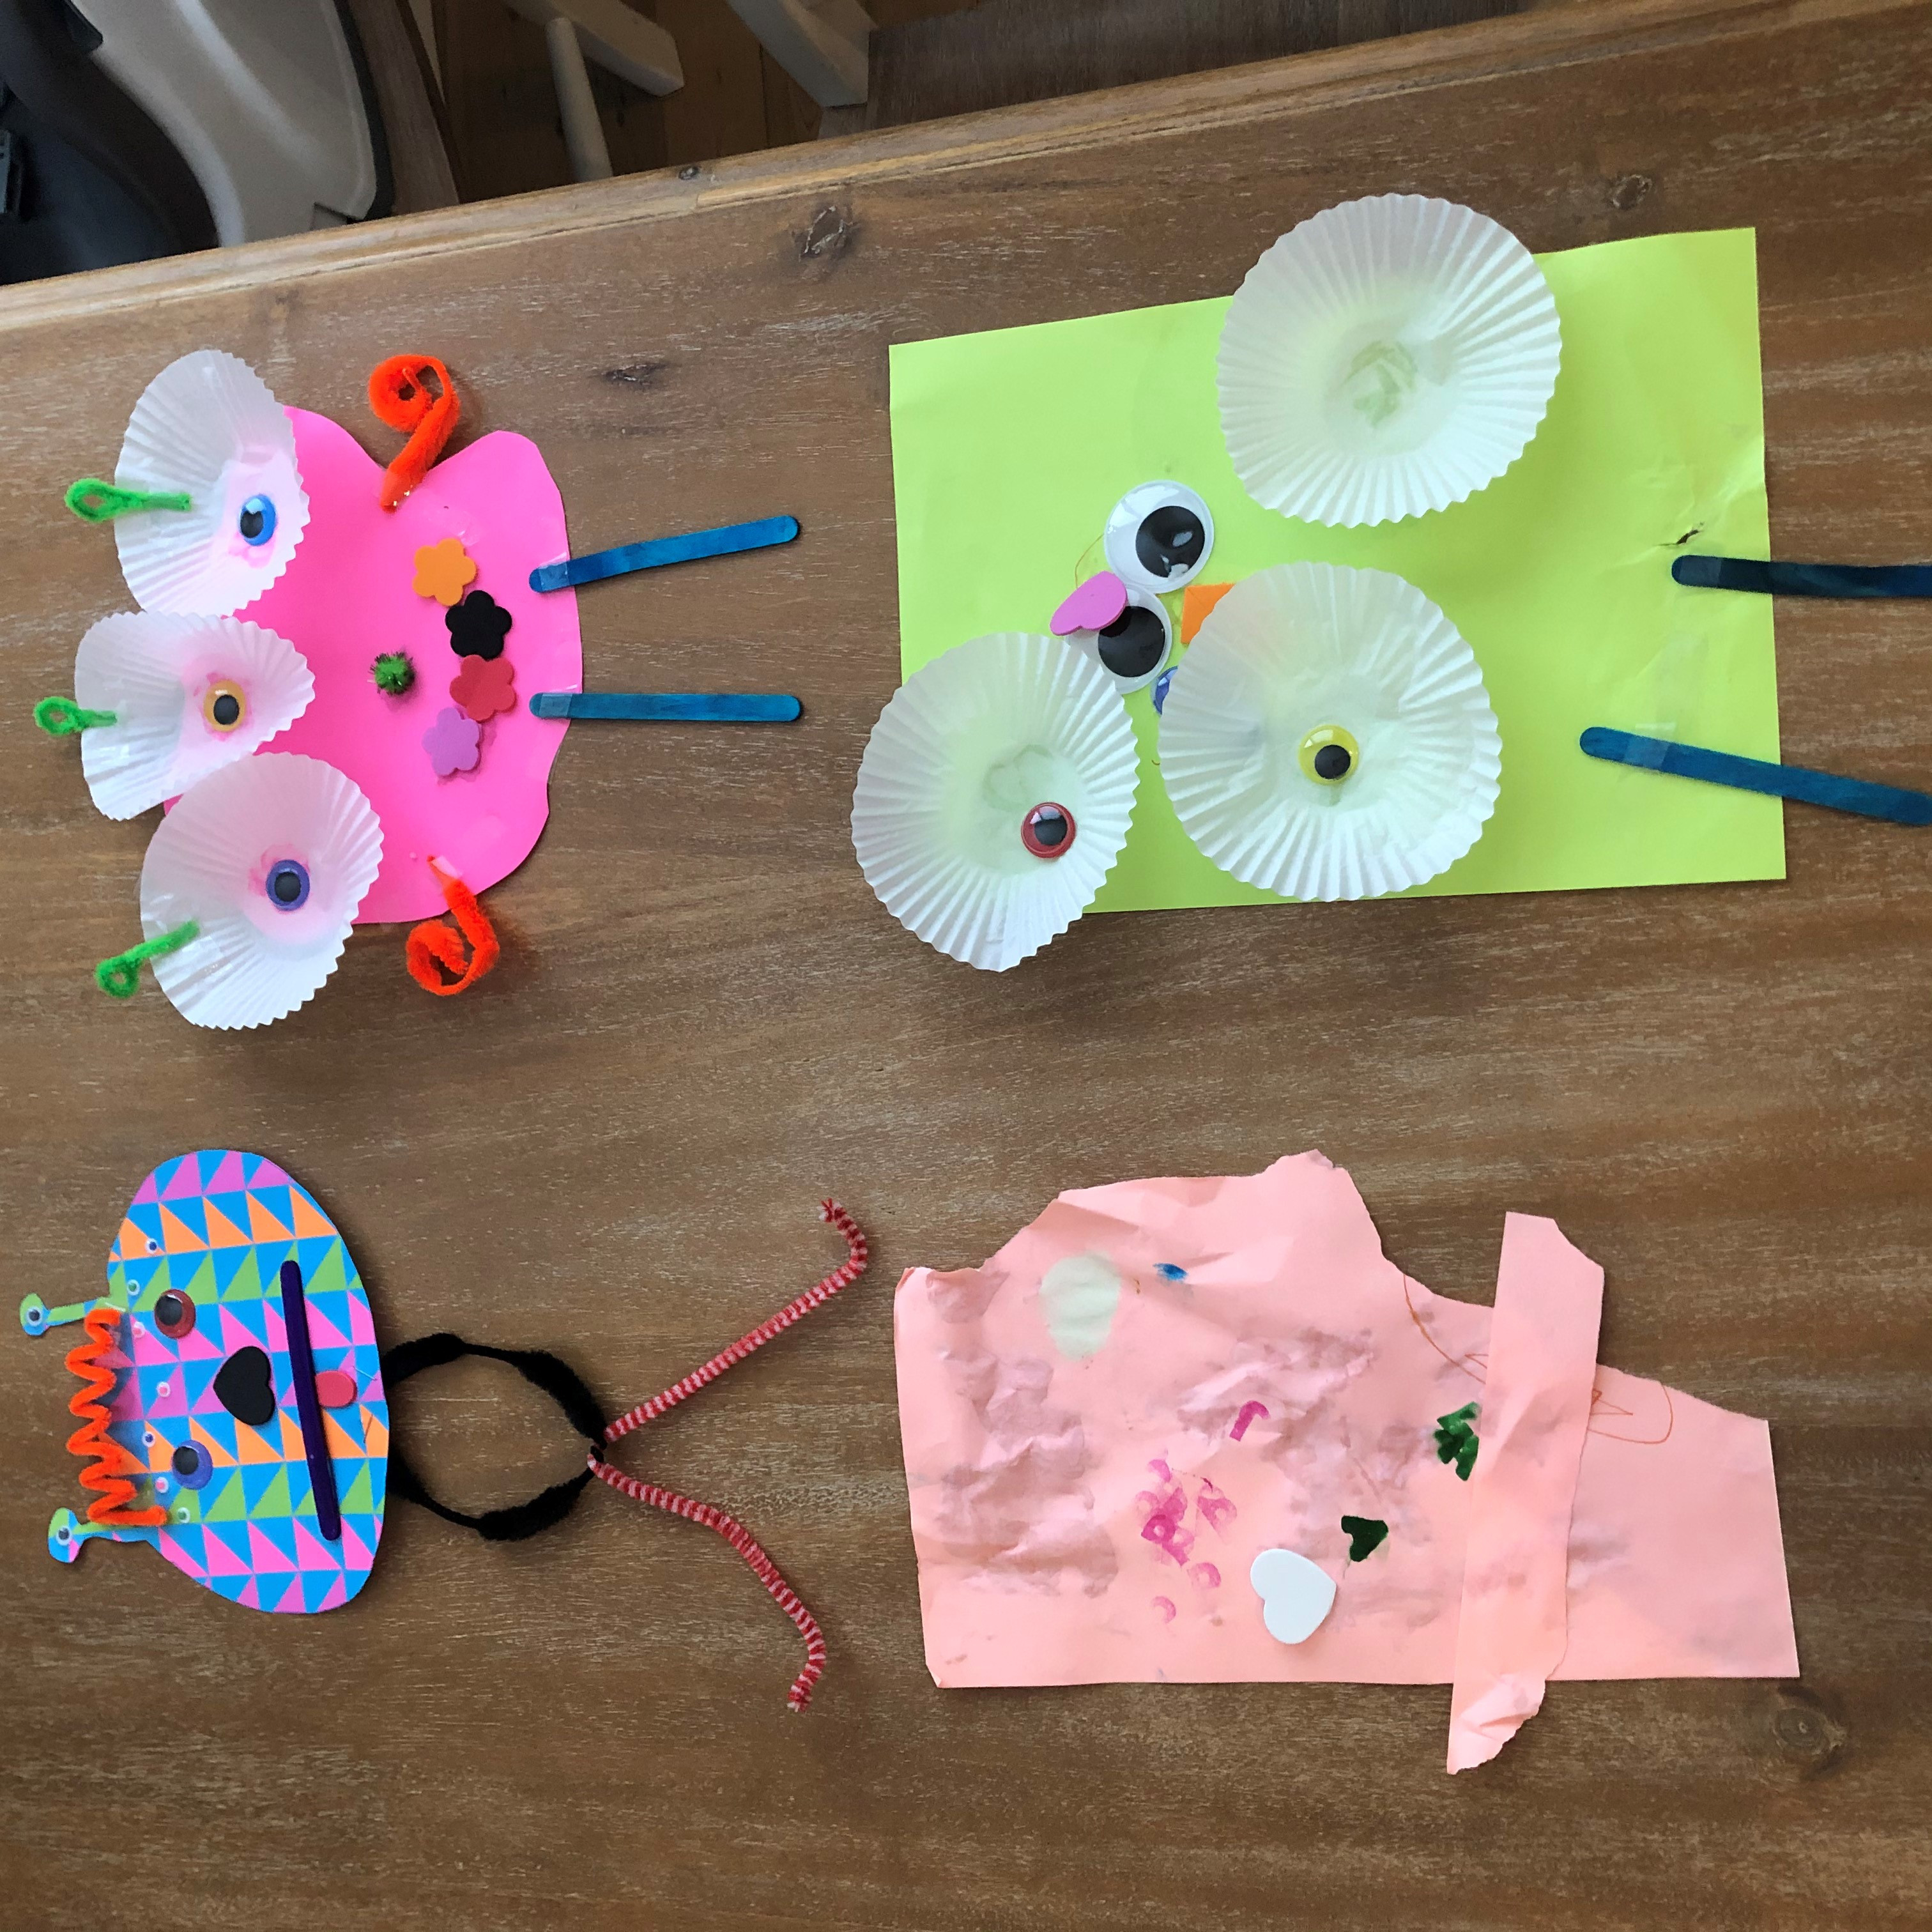 Exploring Creativity in Early Childhood